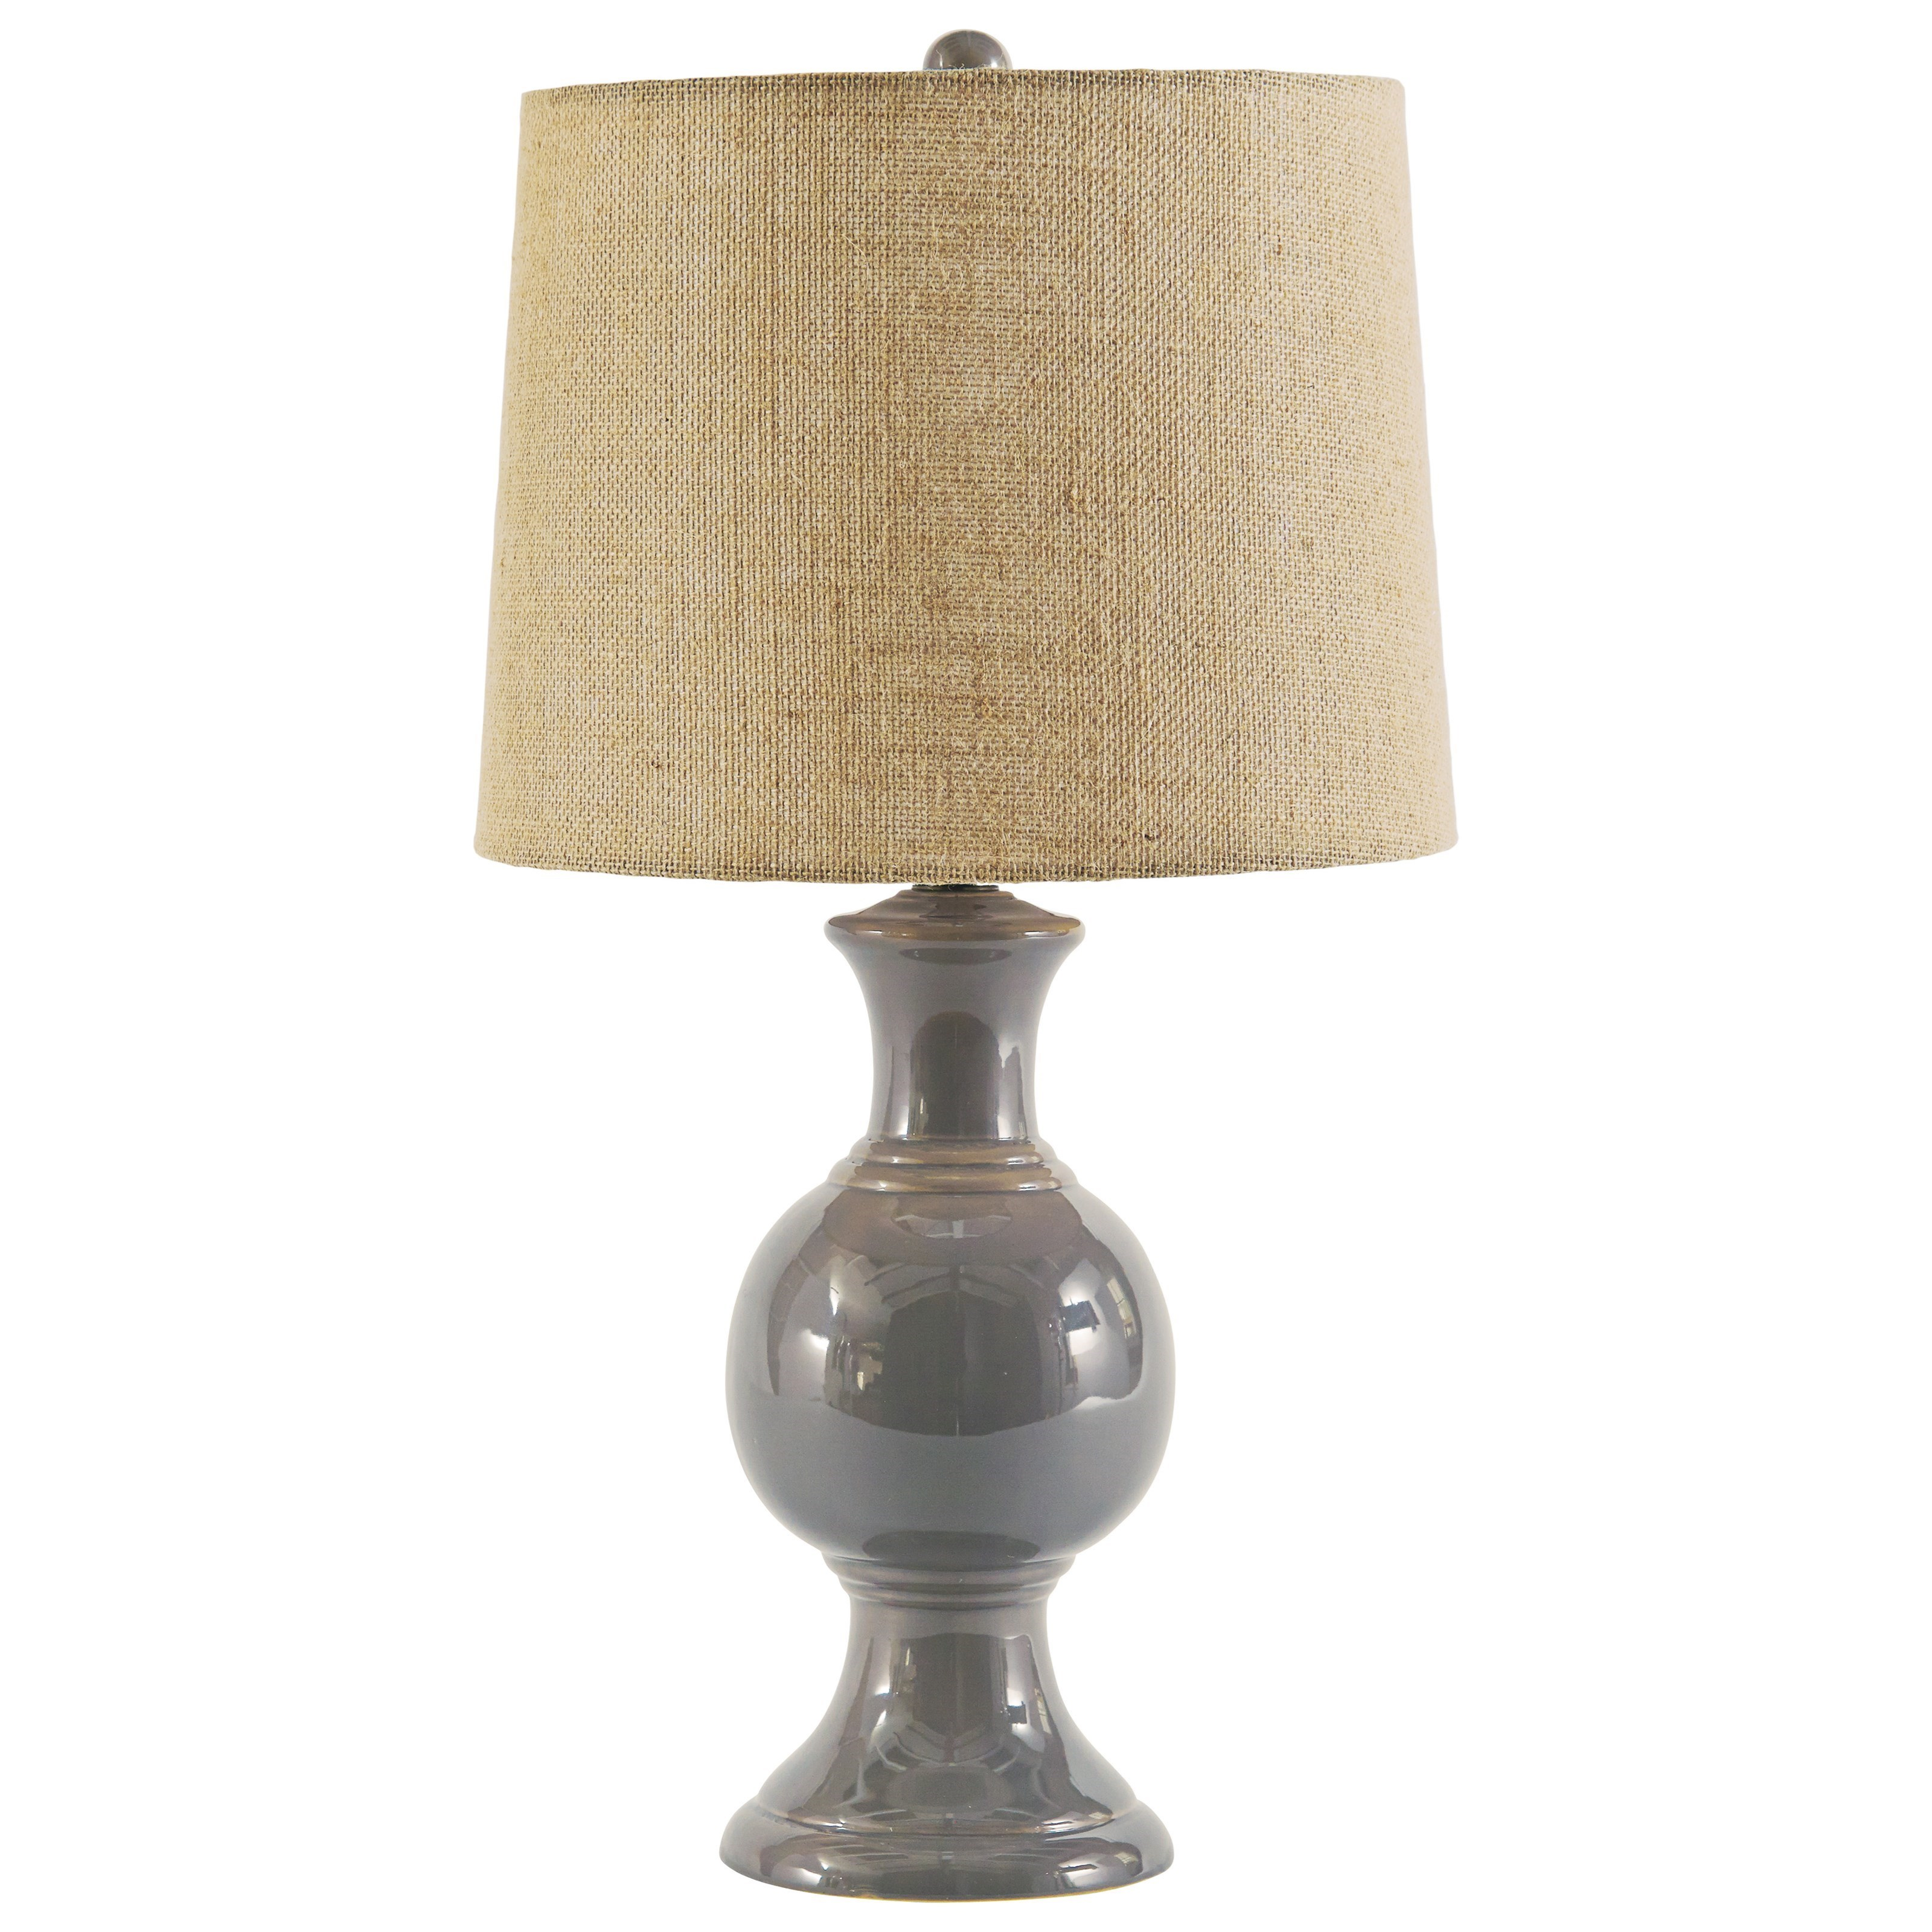 Magdalia Gray Ceramic Table Lamp